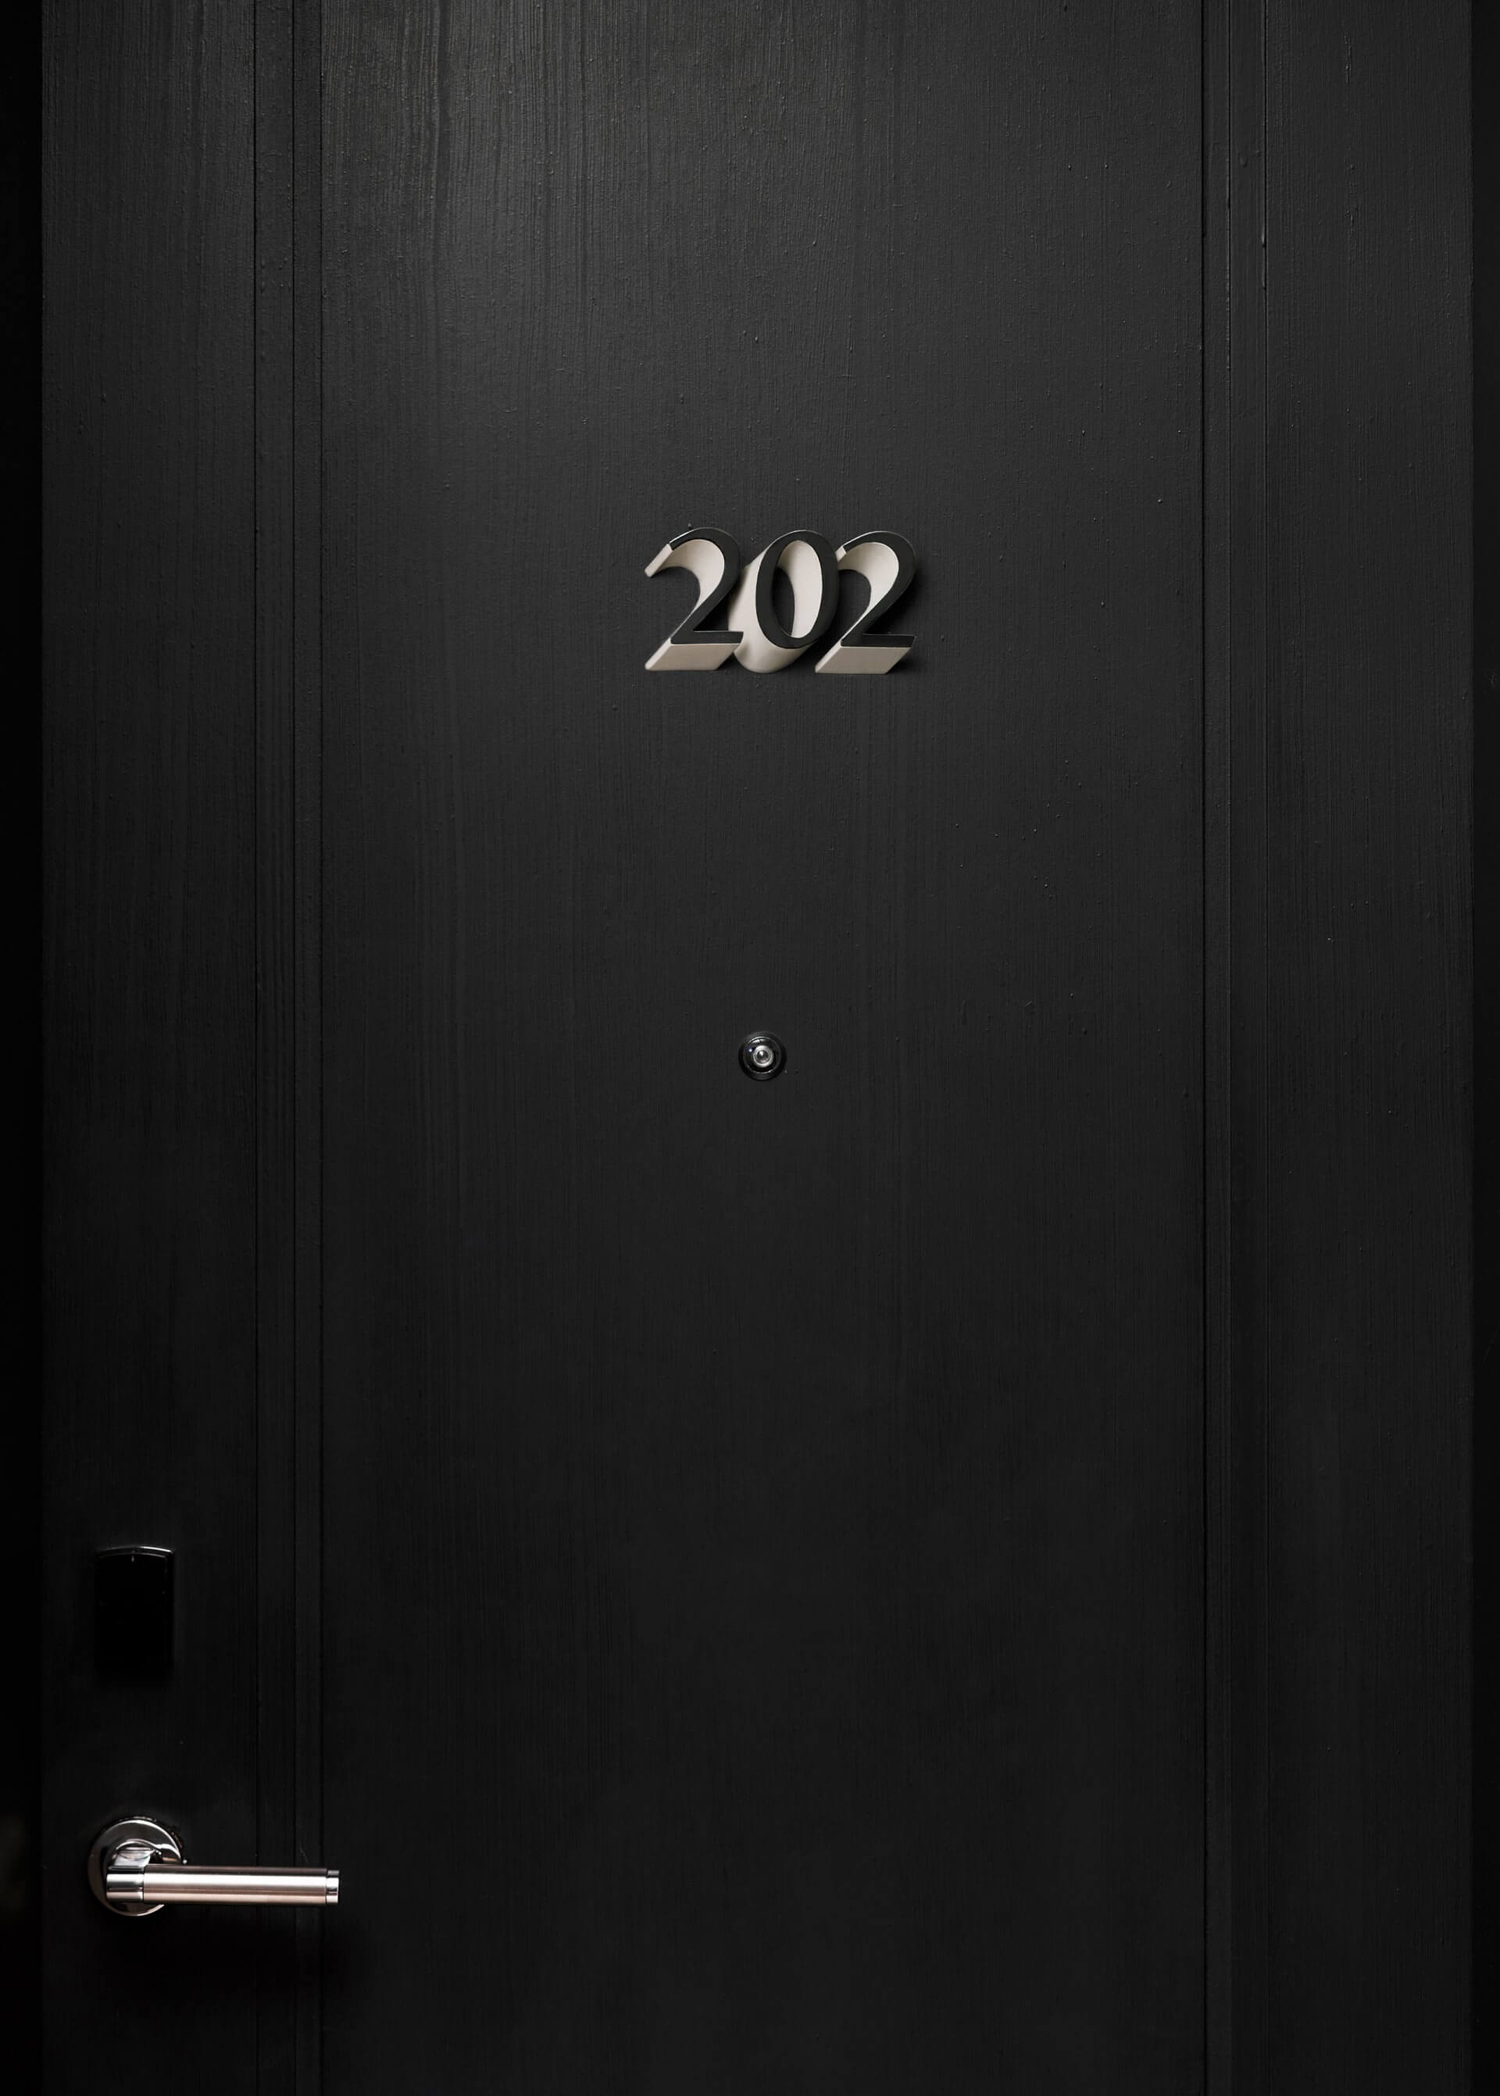 Door numbers designed by Mucho for Spanish 5-star hotel Sant Francesc.